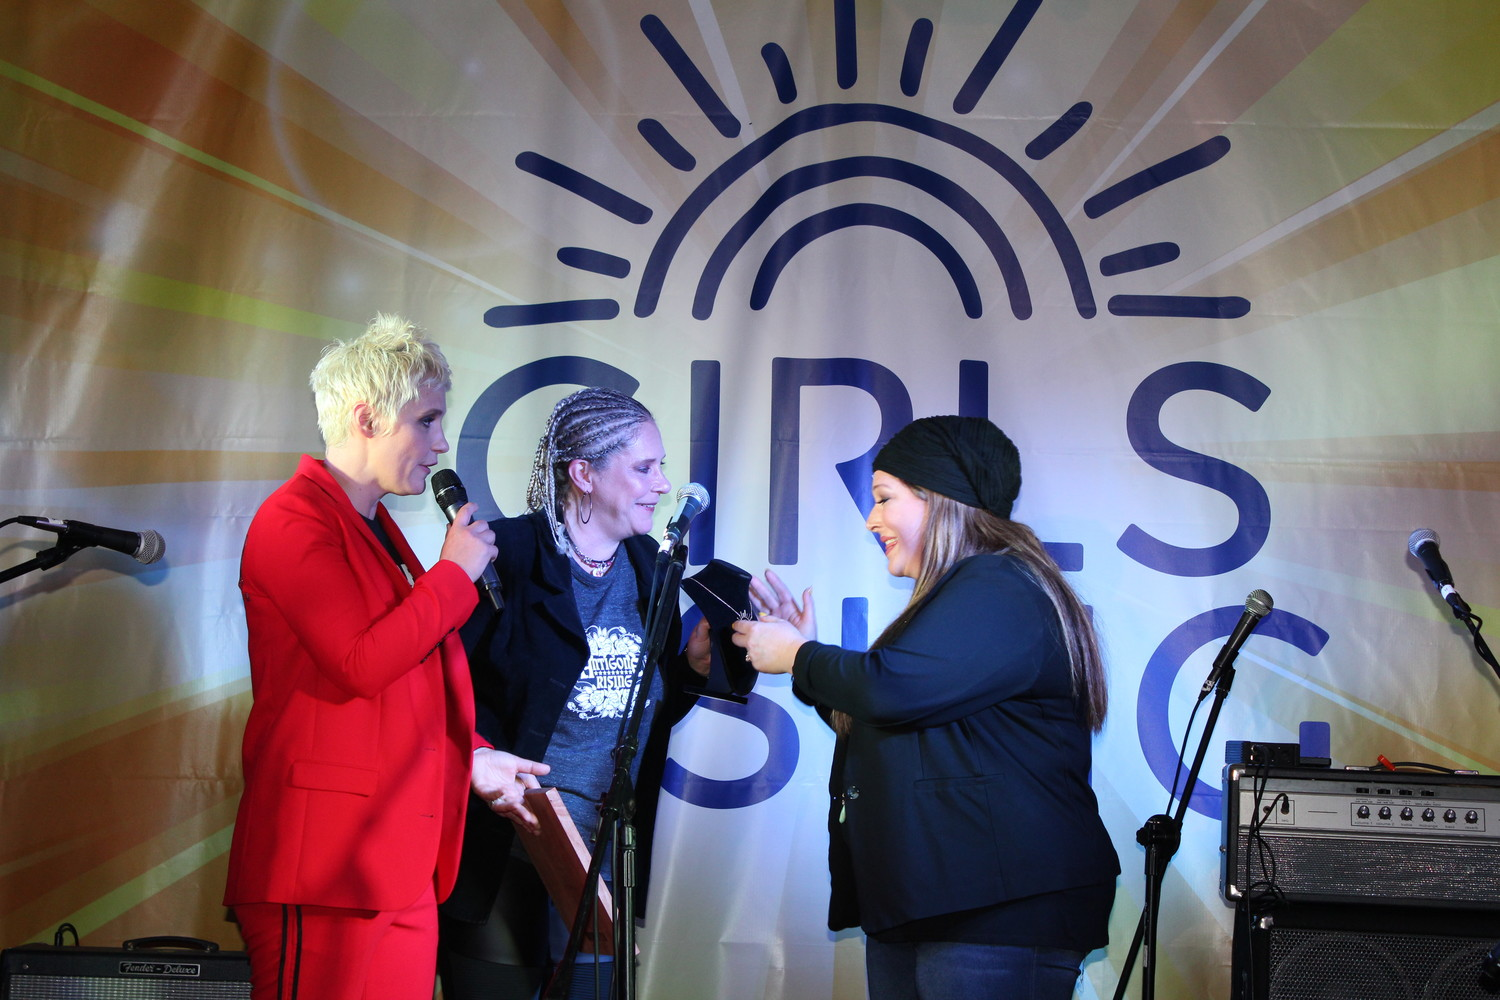 Kristen Ellis-Henderson, left, and Cathy Henderson honor Carnie Wilson of Wilson Phillips with the first-ever Game Changer Award for her commitment to uplifting women. They presented Wilson with a necklace sporting the Girls Rising logo, created by Sea Cliff jeweler and member of the Girls Rising Board of Directors Kathleen DiResta.